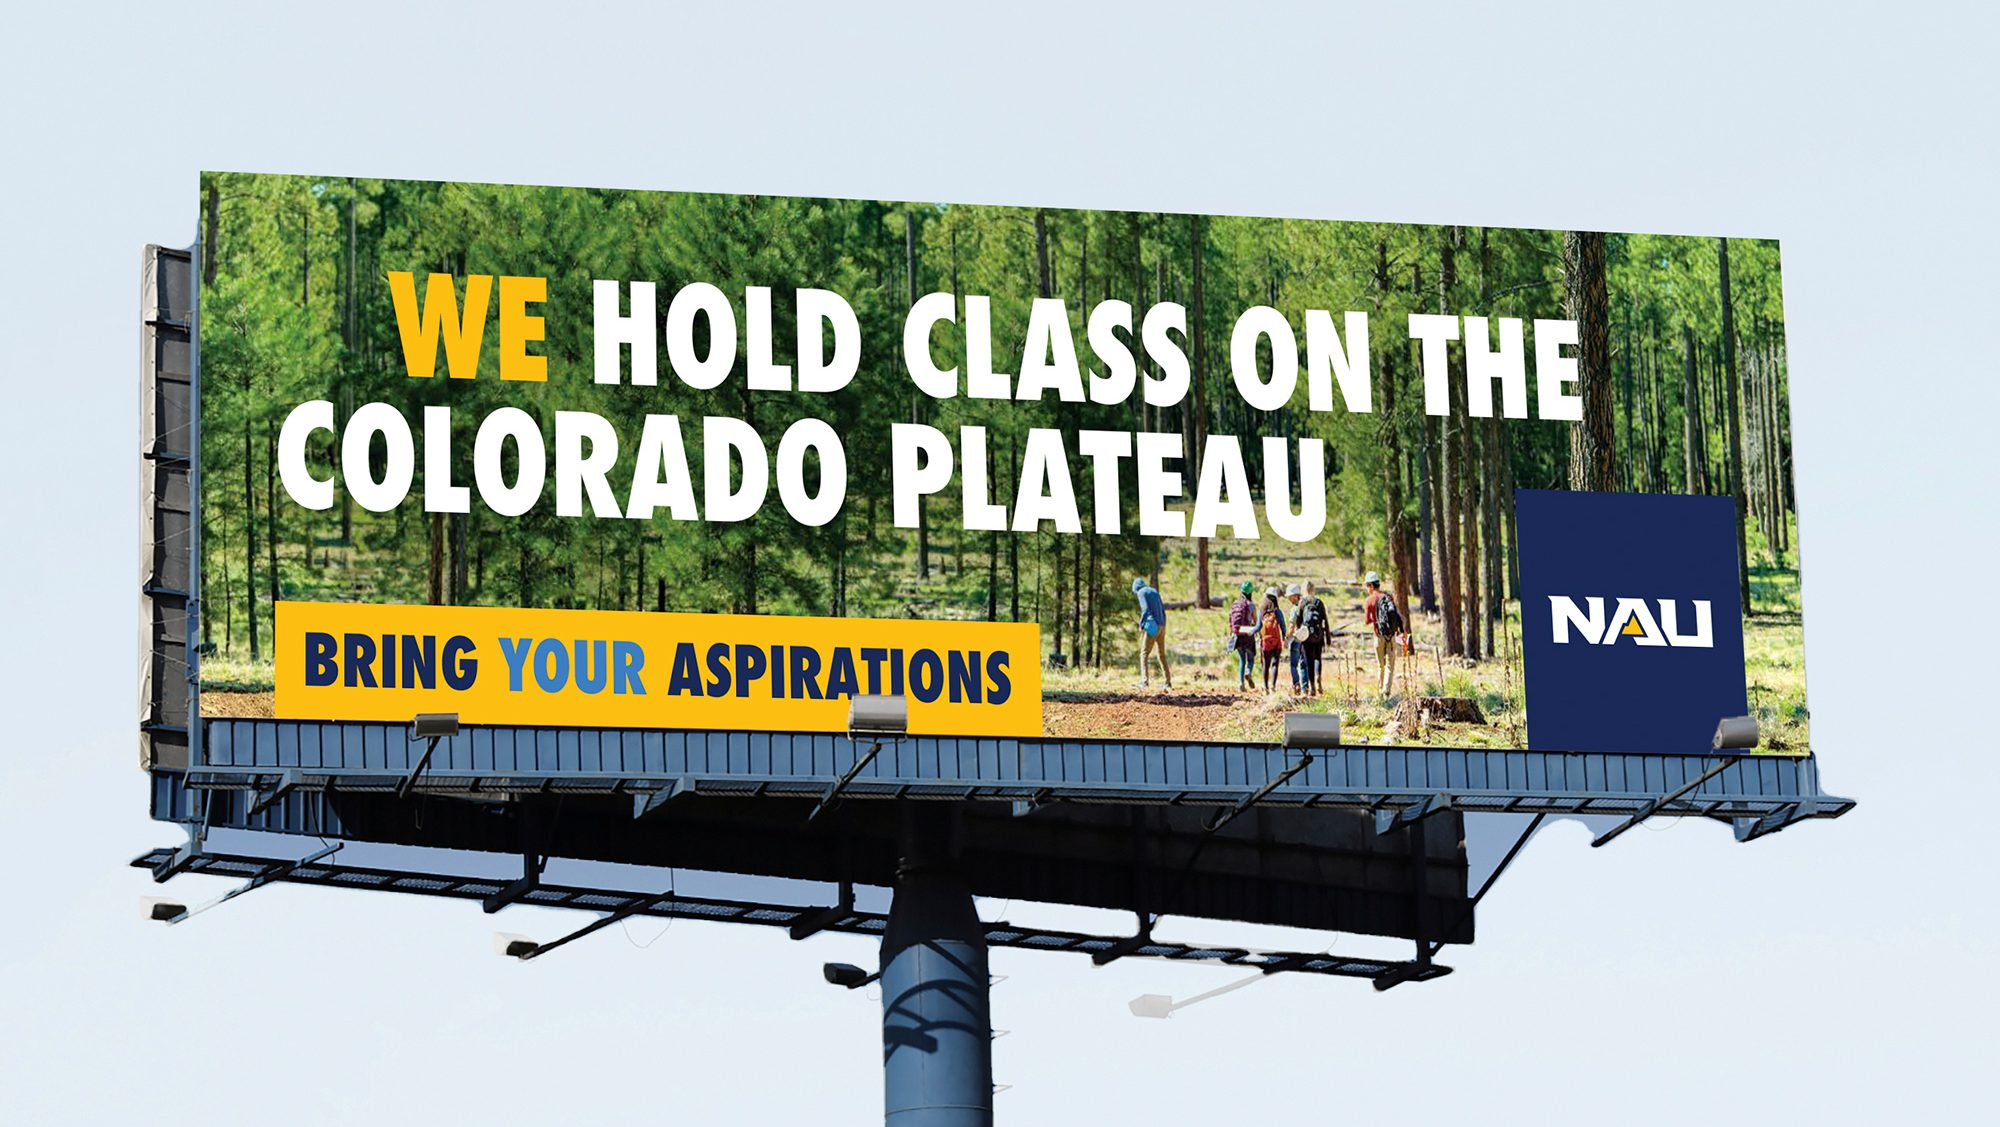 We hold class on the Colorado Plateau.